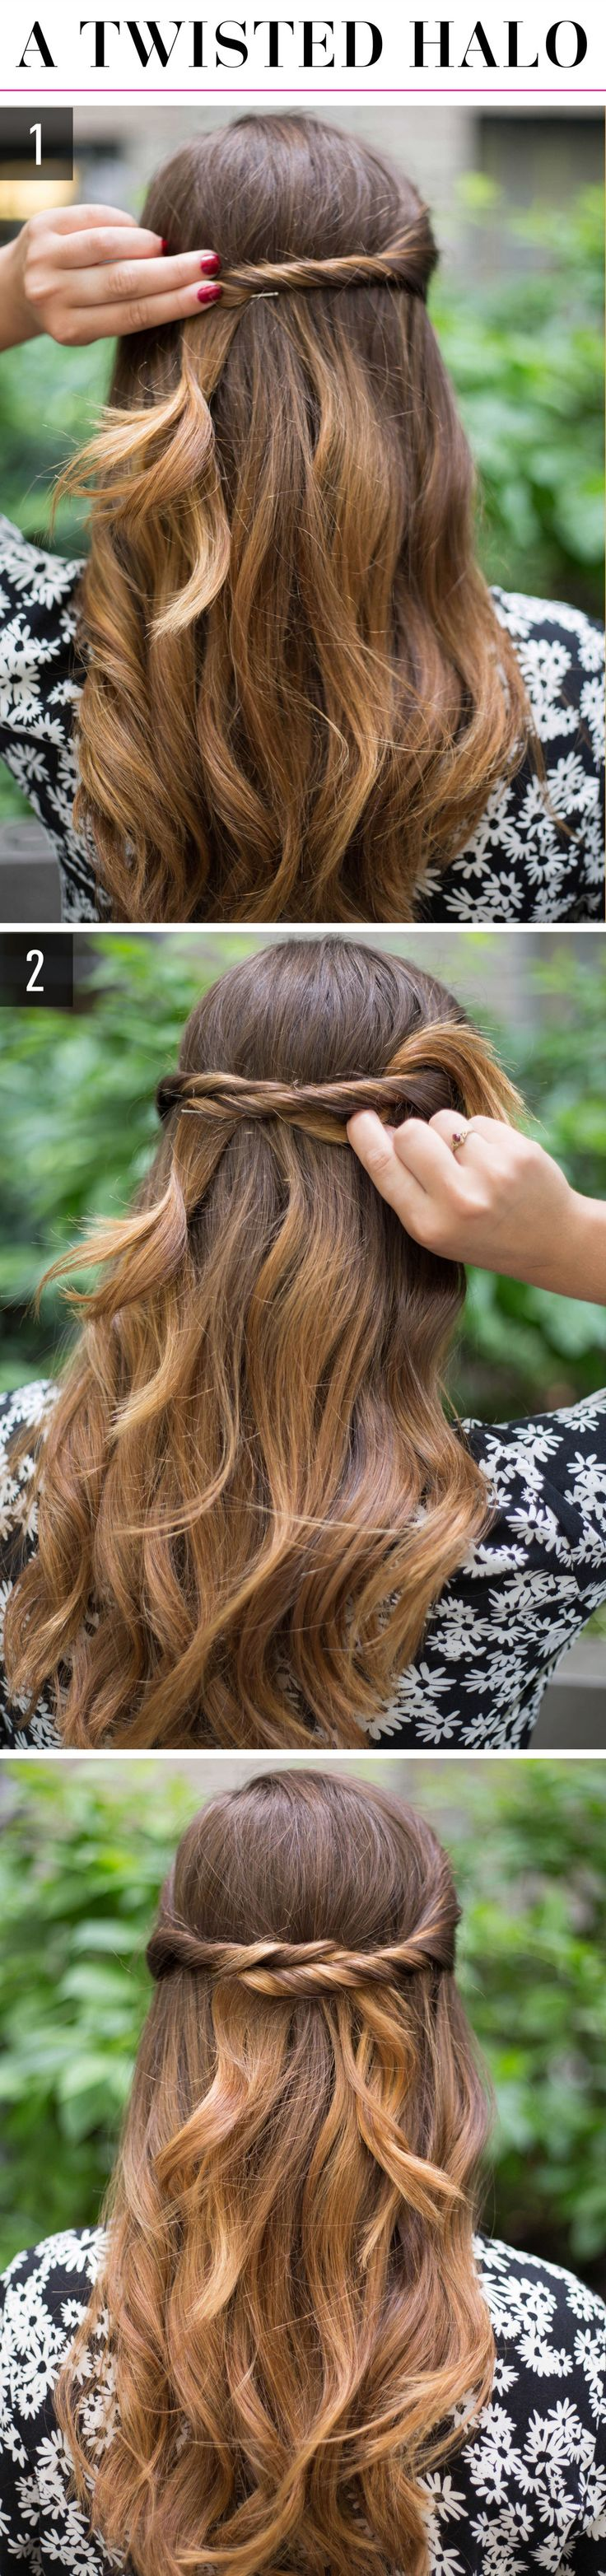 1.Twist back a small section of hair from one side of your head, and secure it with a pin in the middle of your head. 2.Twist back a small section of hair from the other side of your head, tuck it behind the first twisted section, and pin it in the middle of your head.